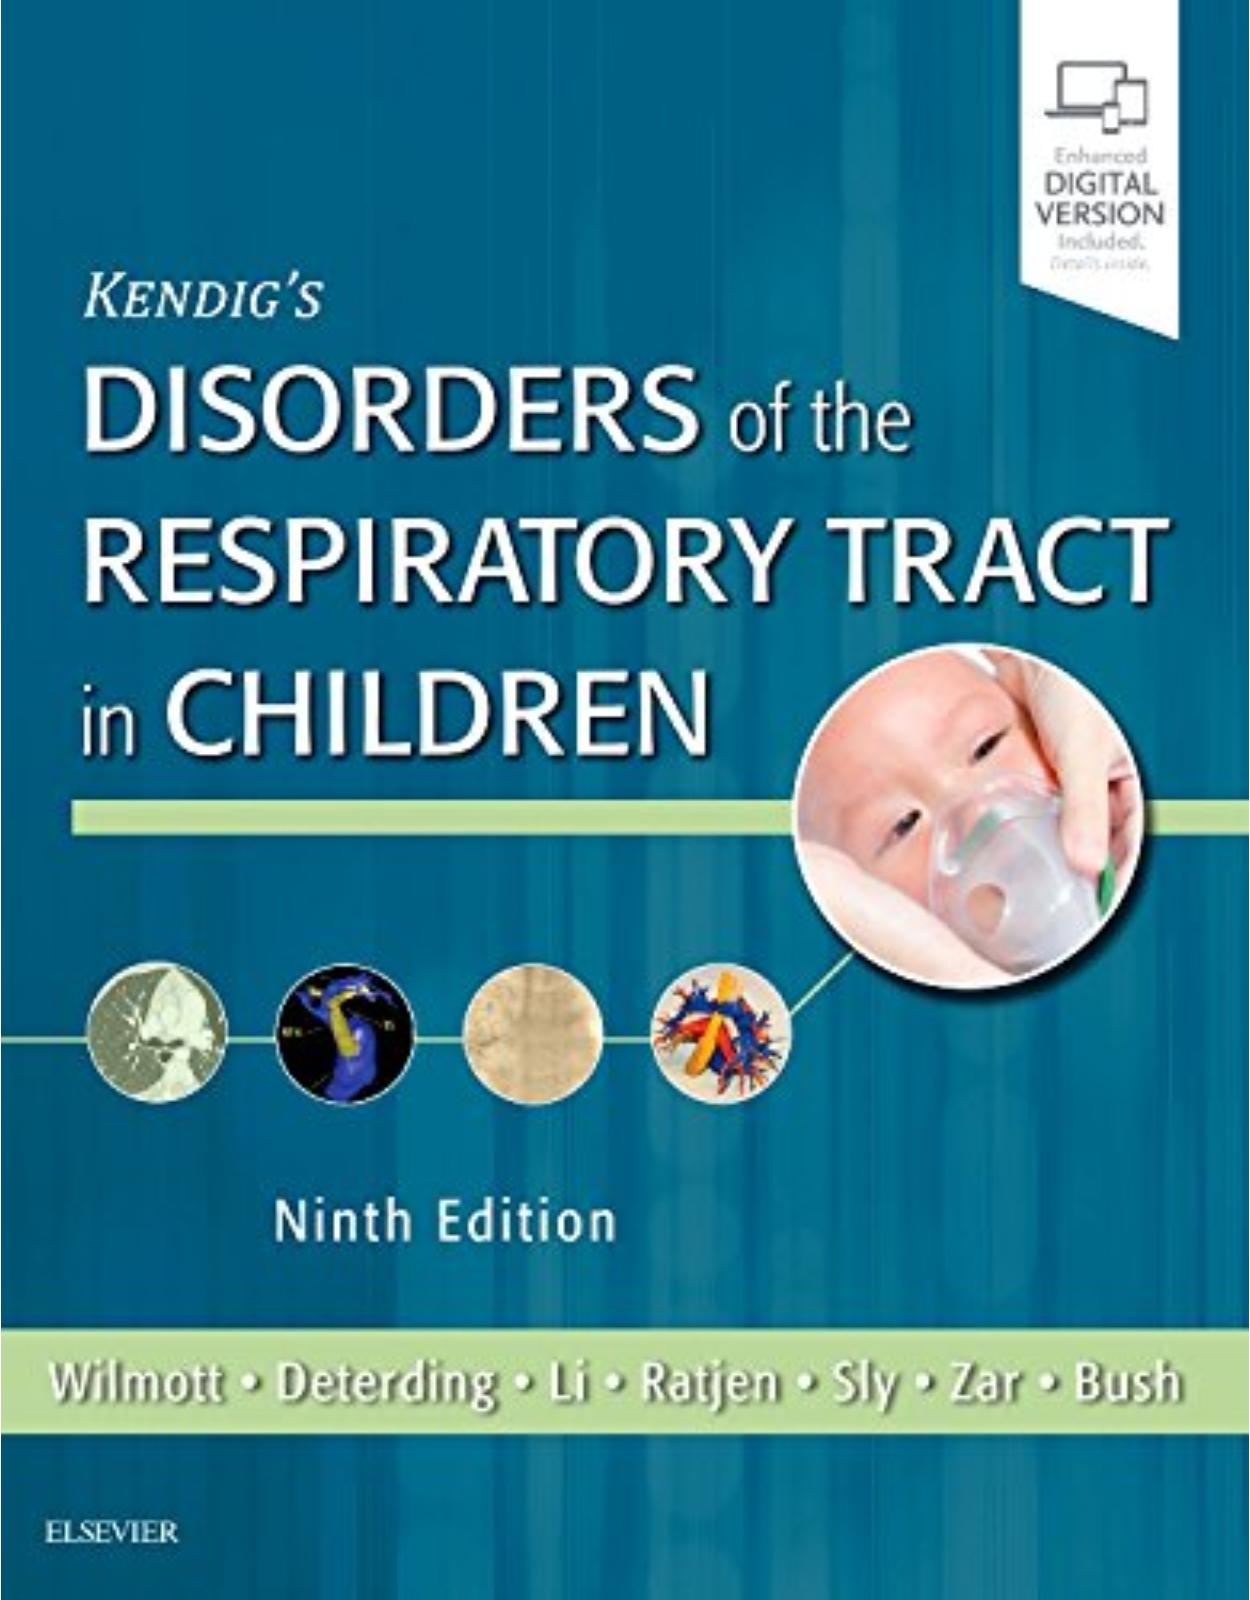 Kendig's Disorders of the Respiratory Tract in Children, 9e